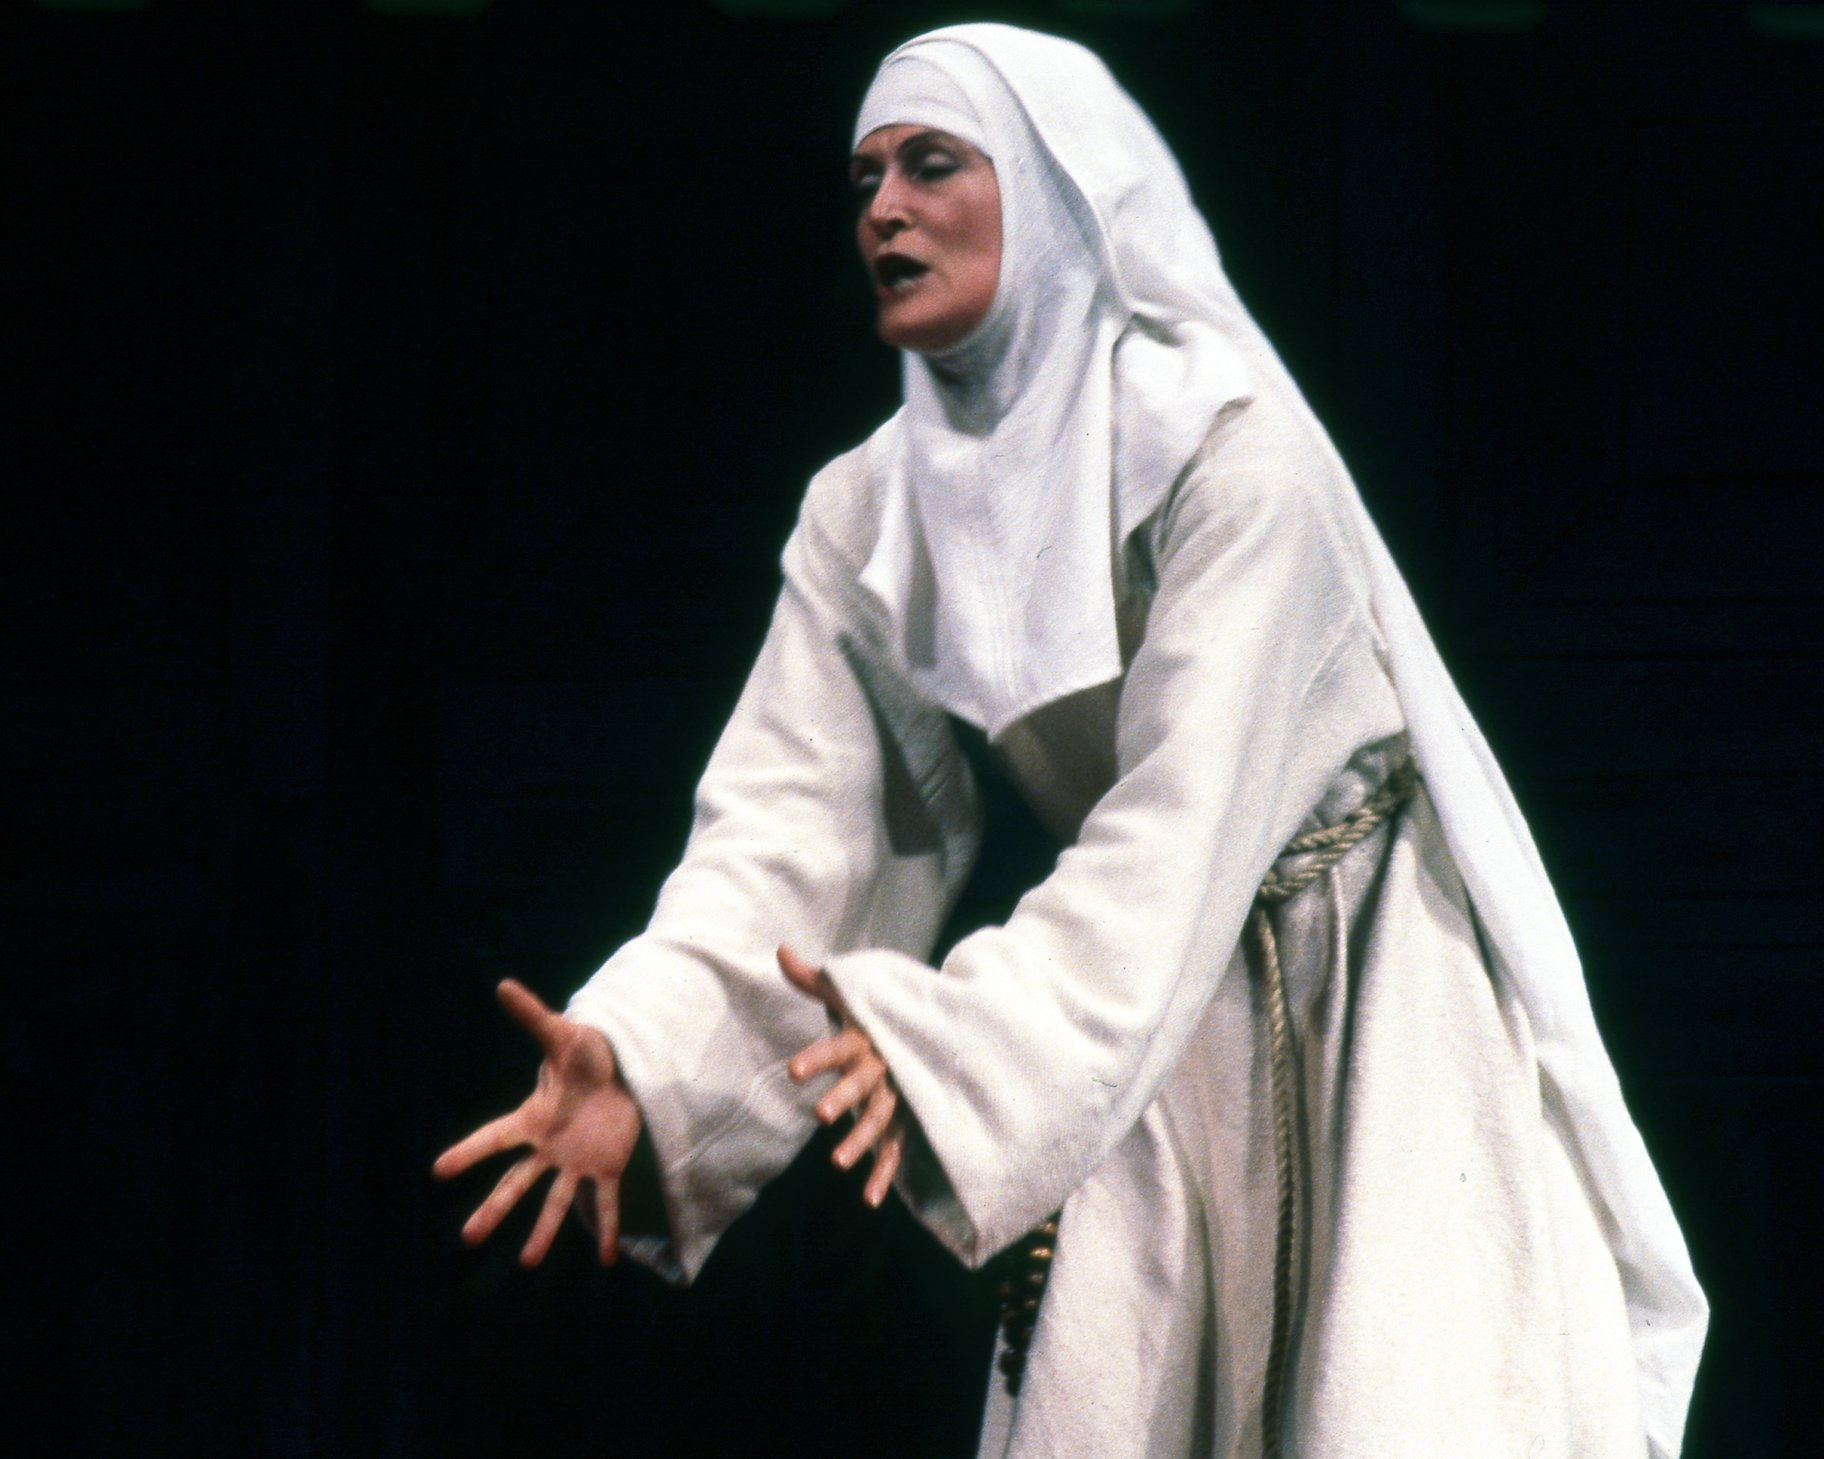 A nun dressed all in white.